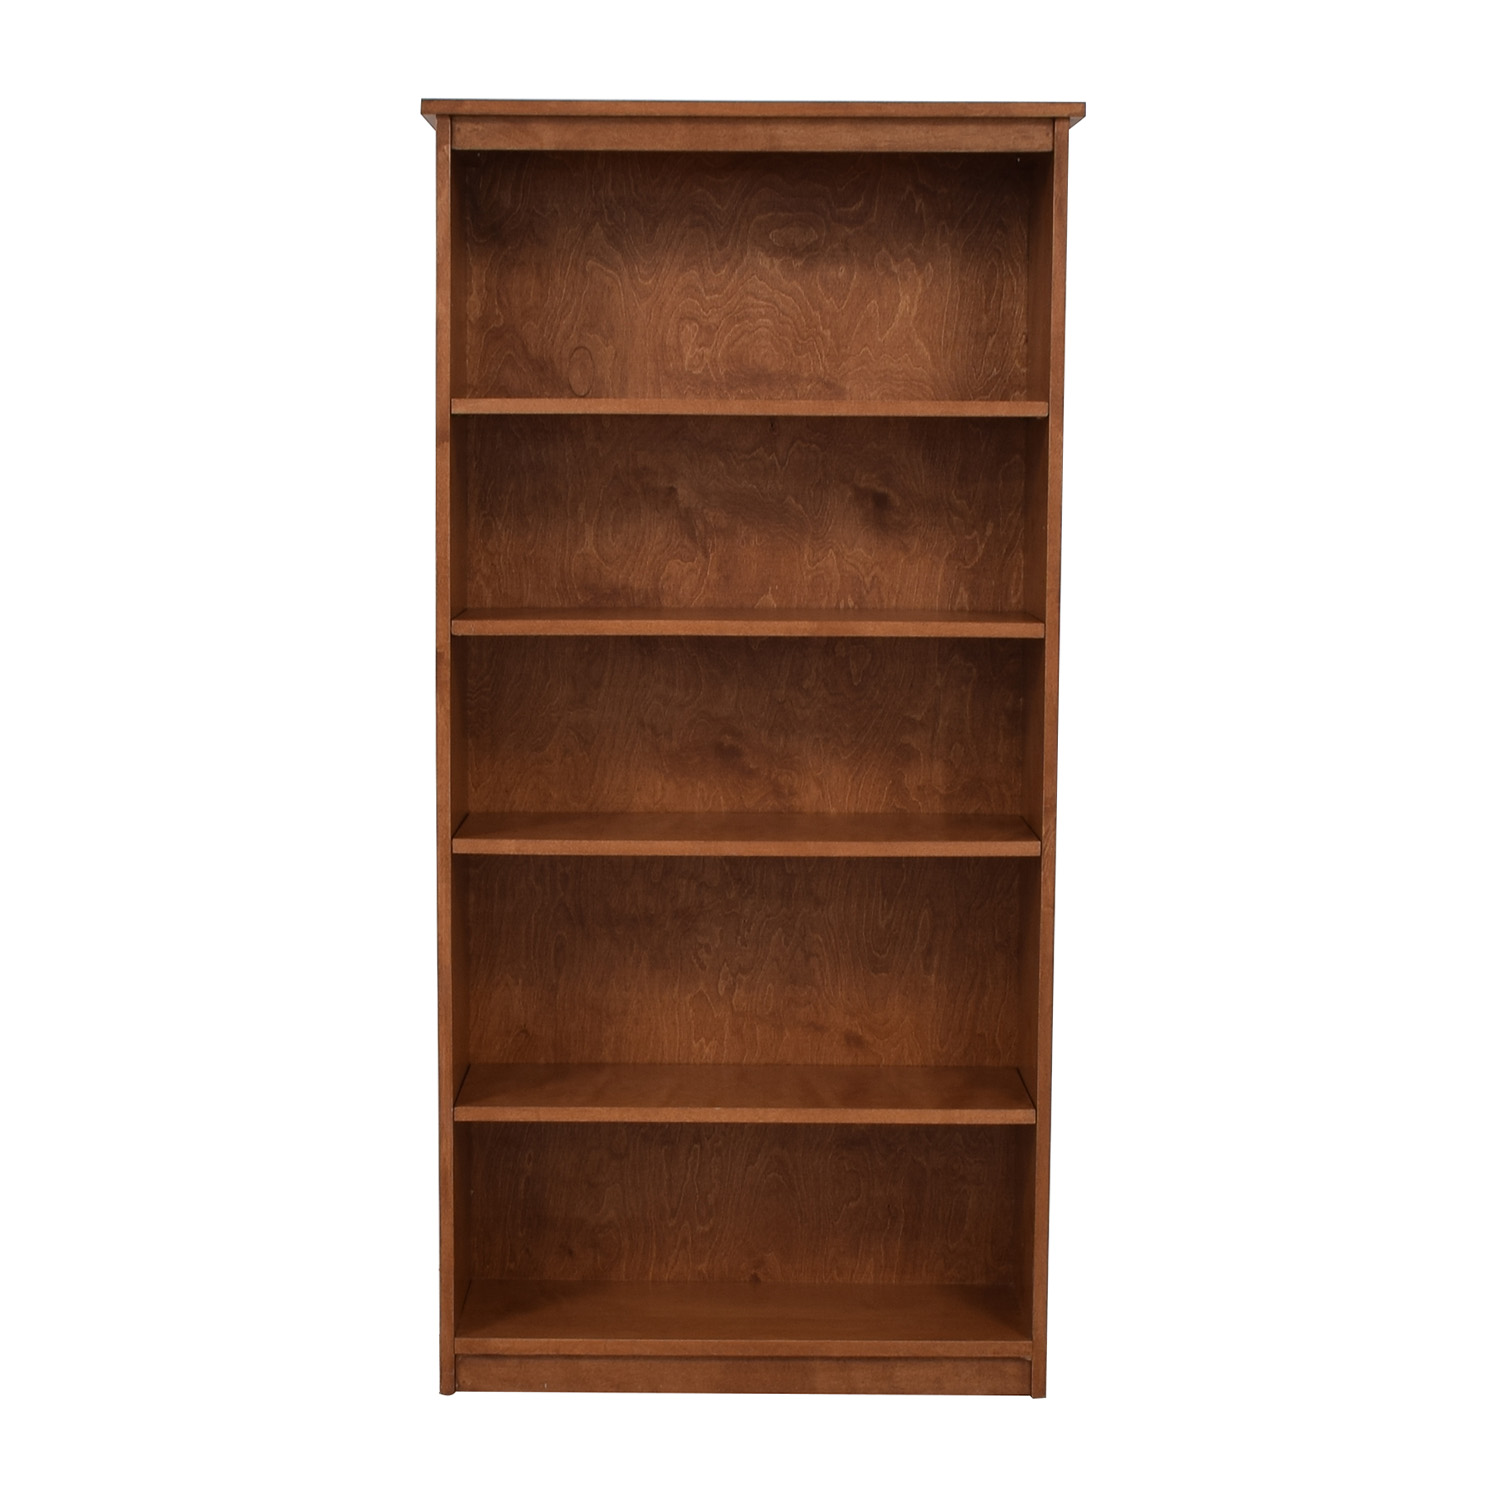 Gothic Cabinet Craft Gothic Cabinet Craft Five-Shelf Bookshelf on sale